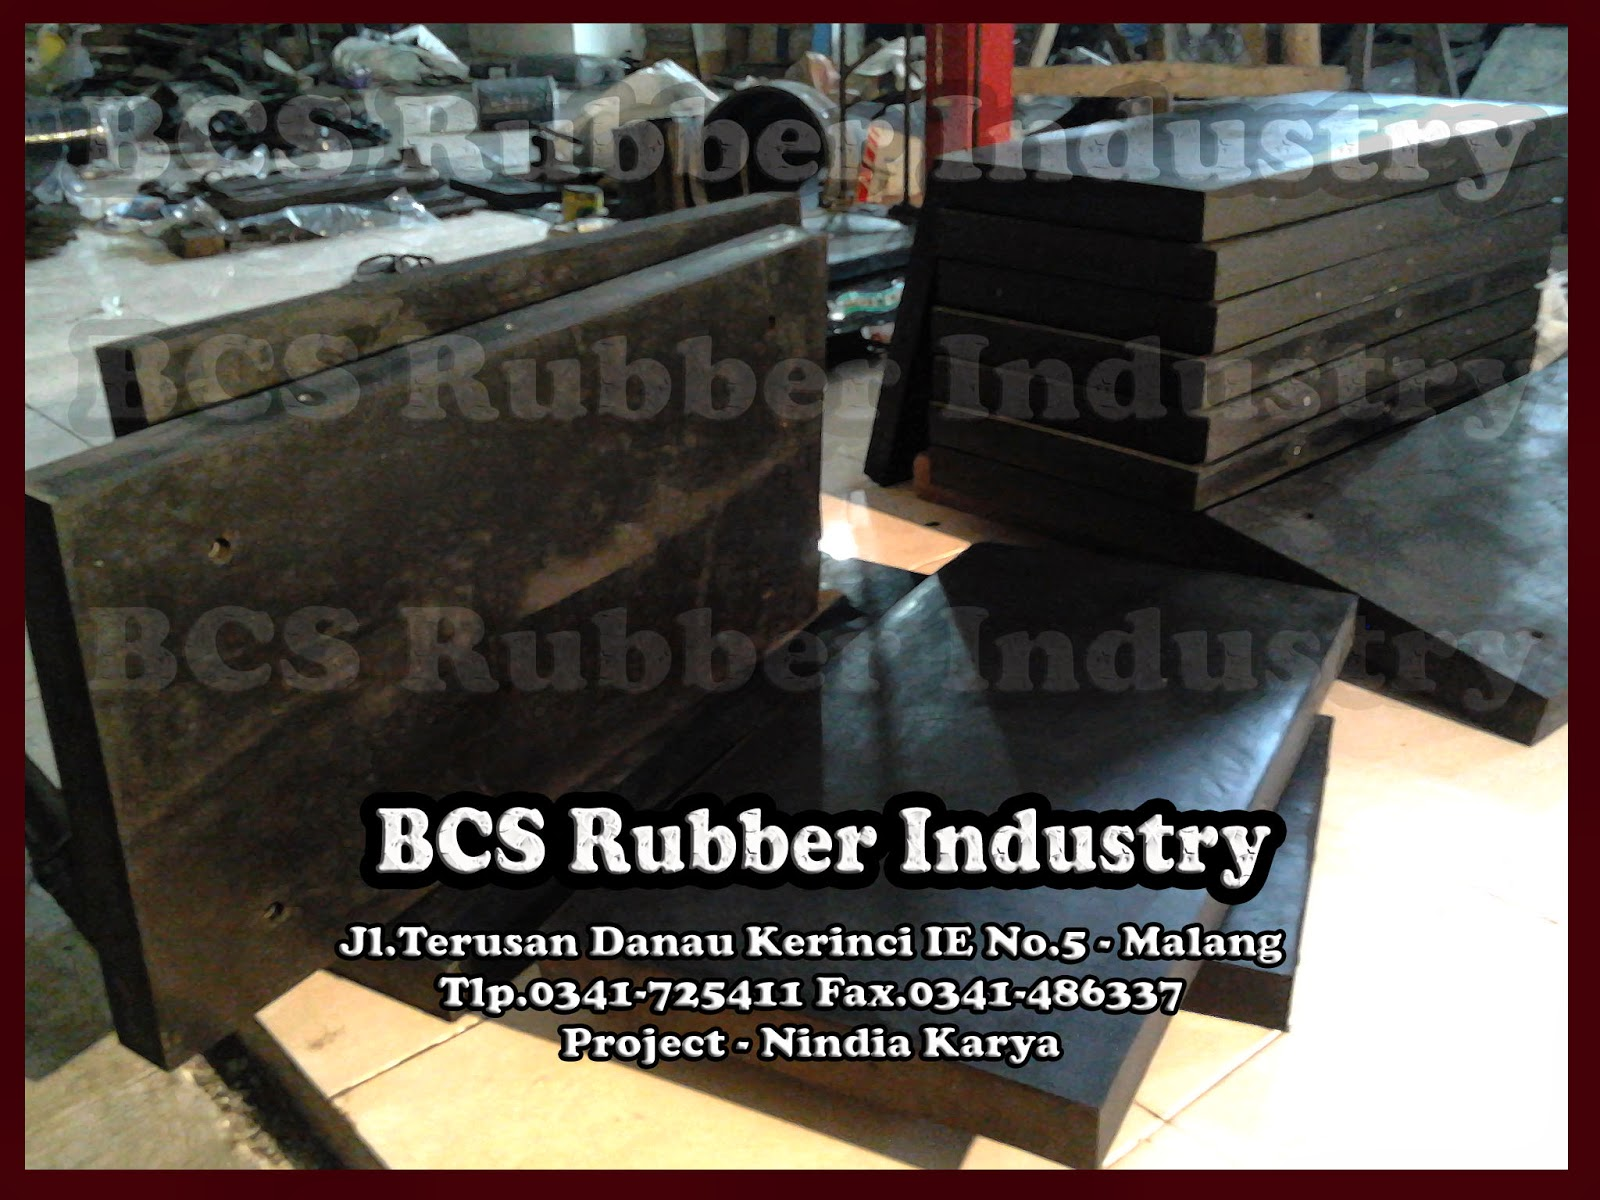 LIST OF ELASTOMERIC BEARING PADS PROPERTIES,ELASTOMERIC JEMBATAN BEARING PADS